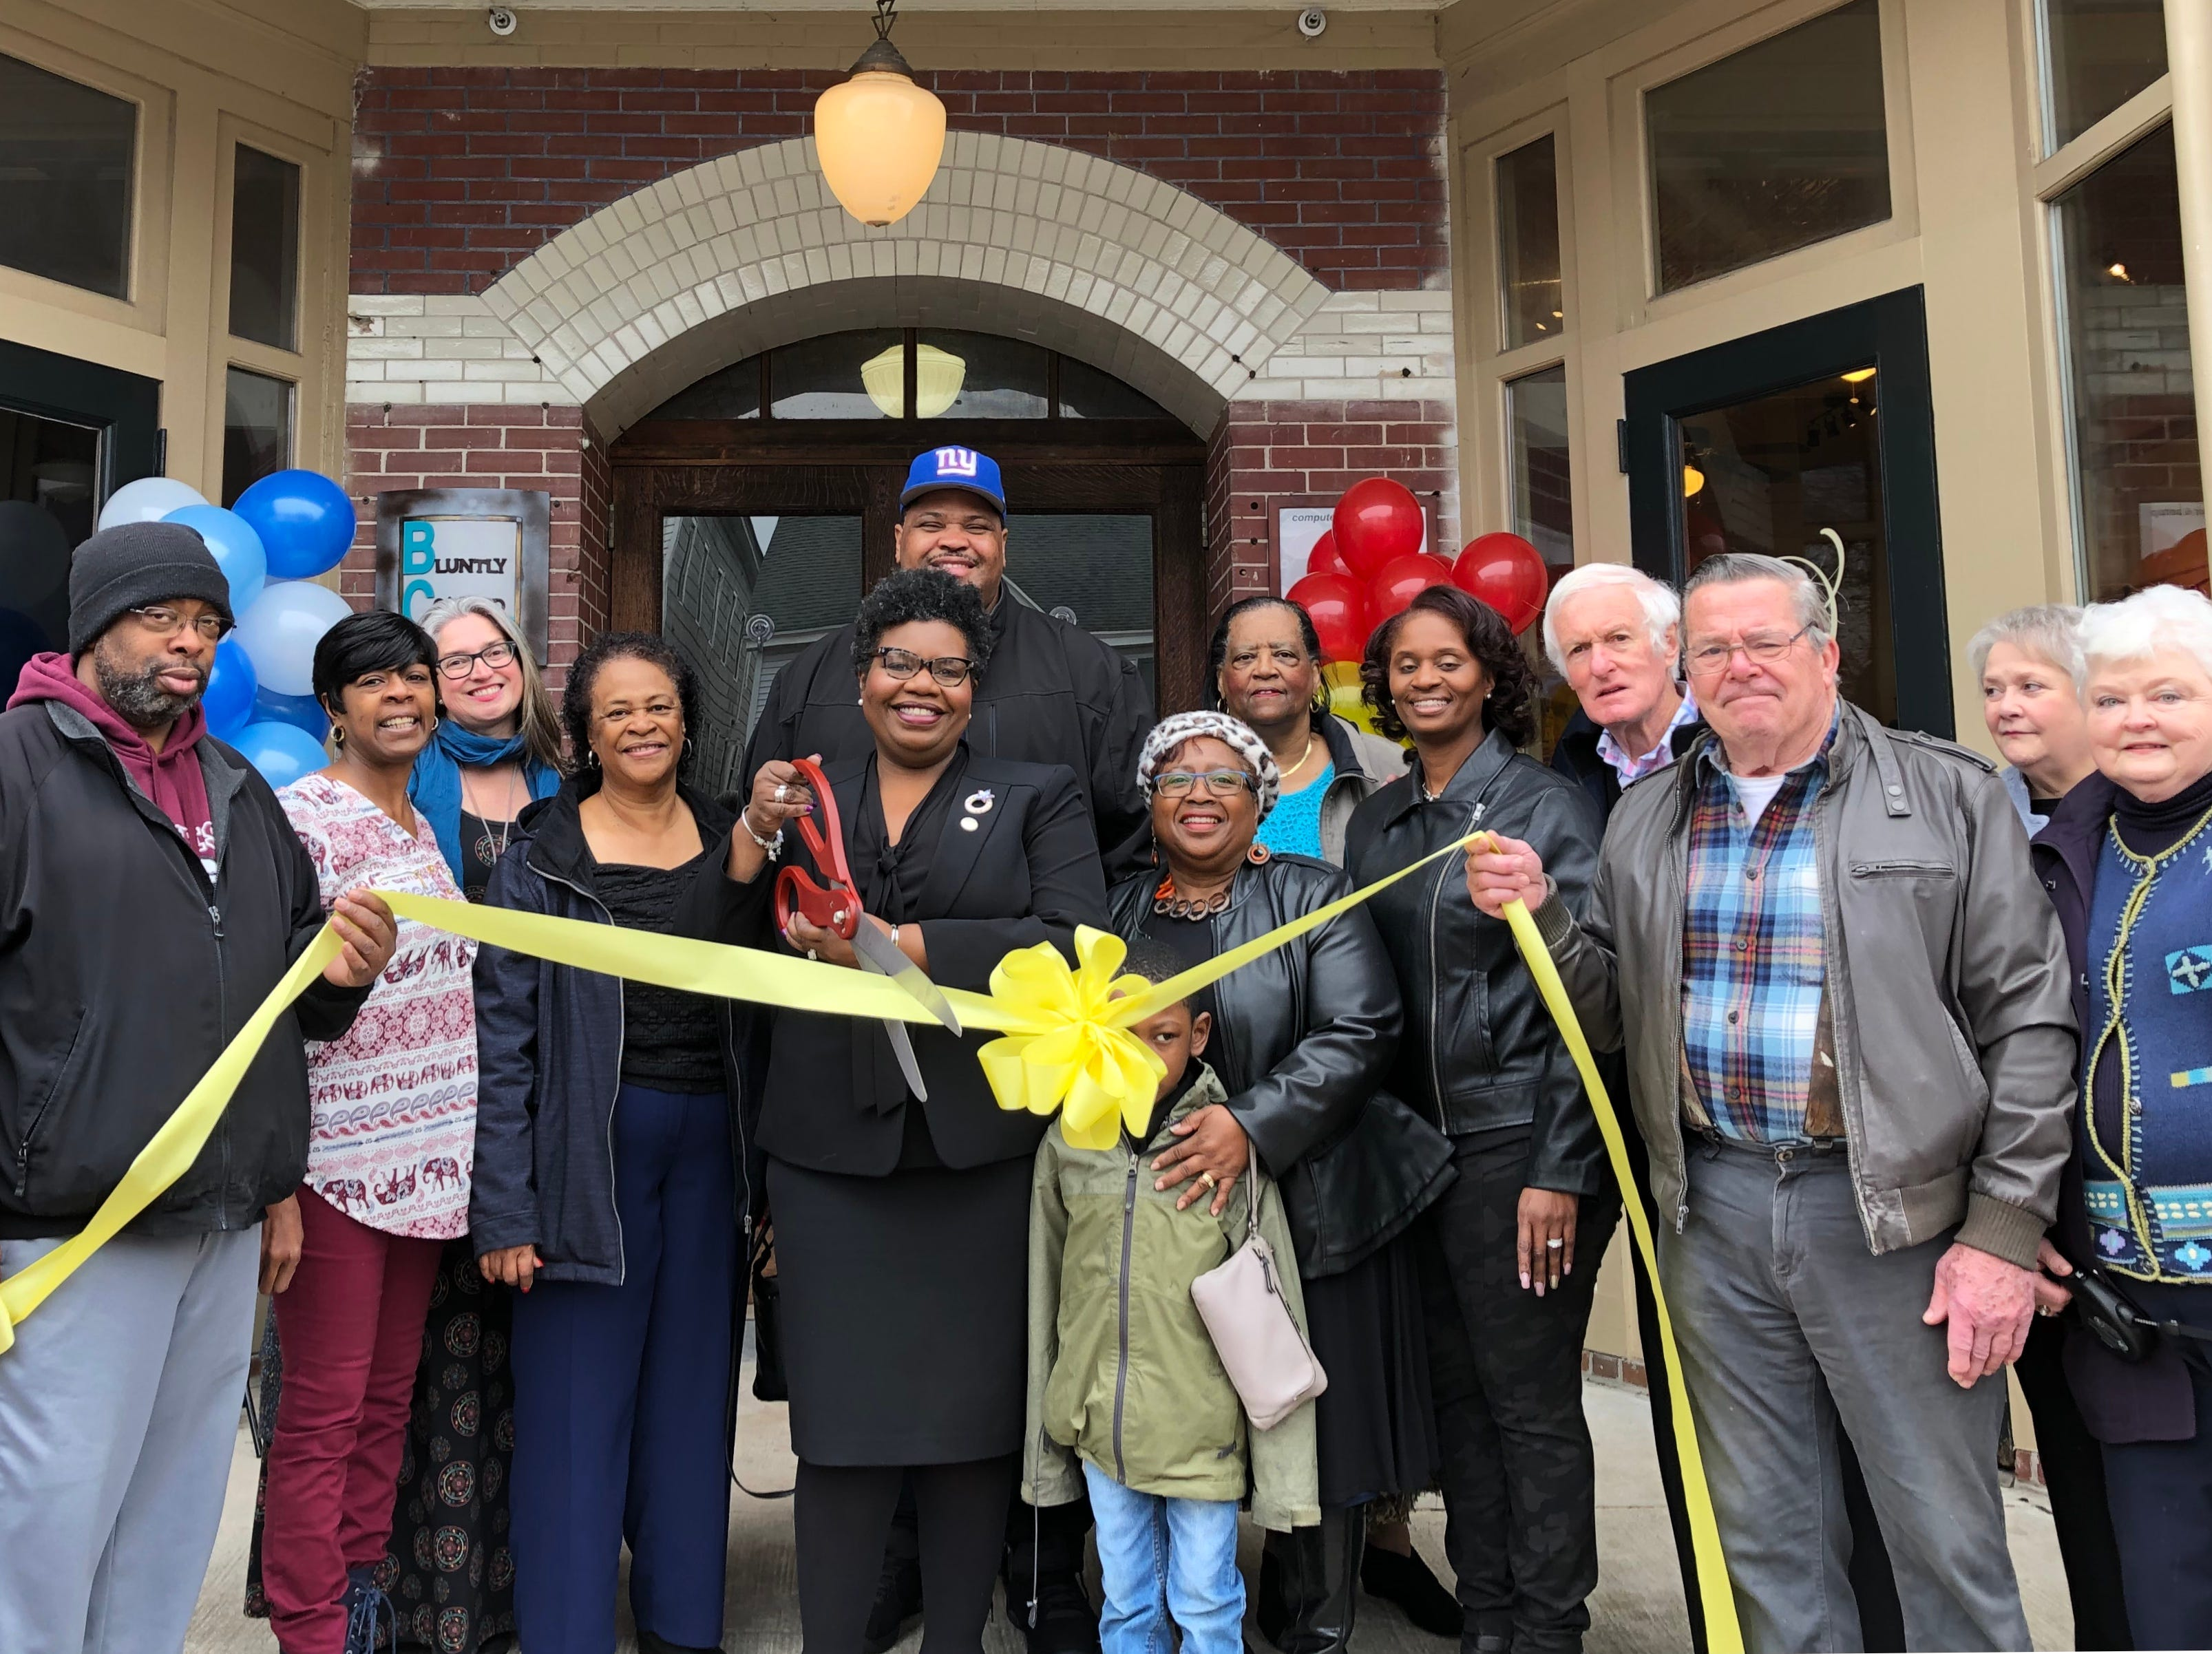 Orlena Williams cuts the ribbon in front of her new Princess Anne store, O Grace & Glory Boutique on Saturday, Feb. 23, 2019.